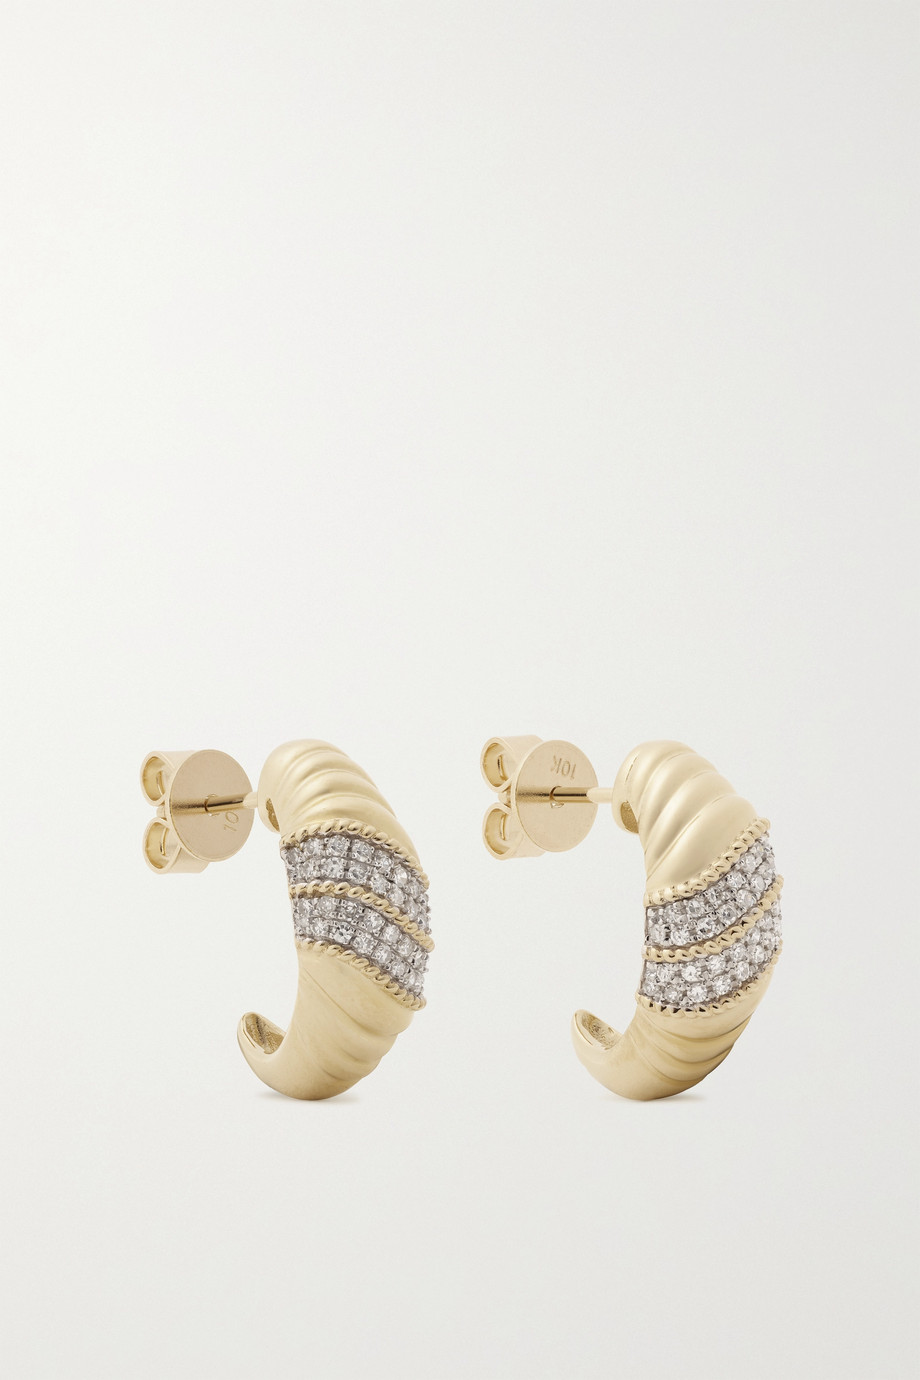 STONE AND STRAND Le Grande Cupola 10-karat gold diamond earrings